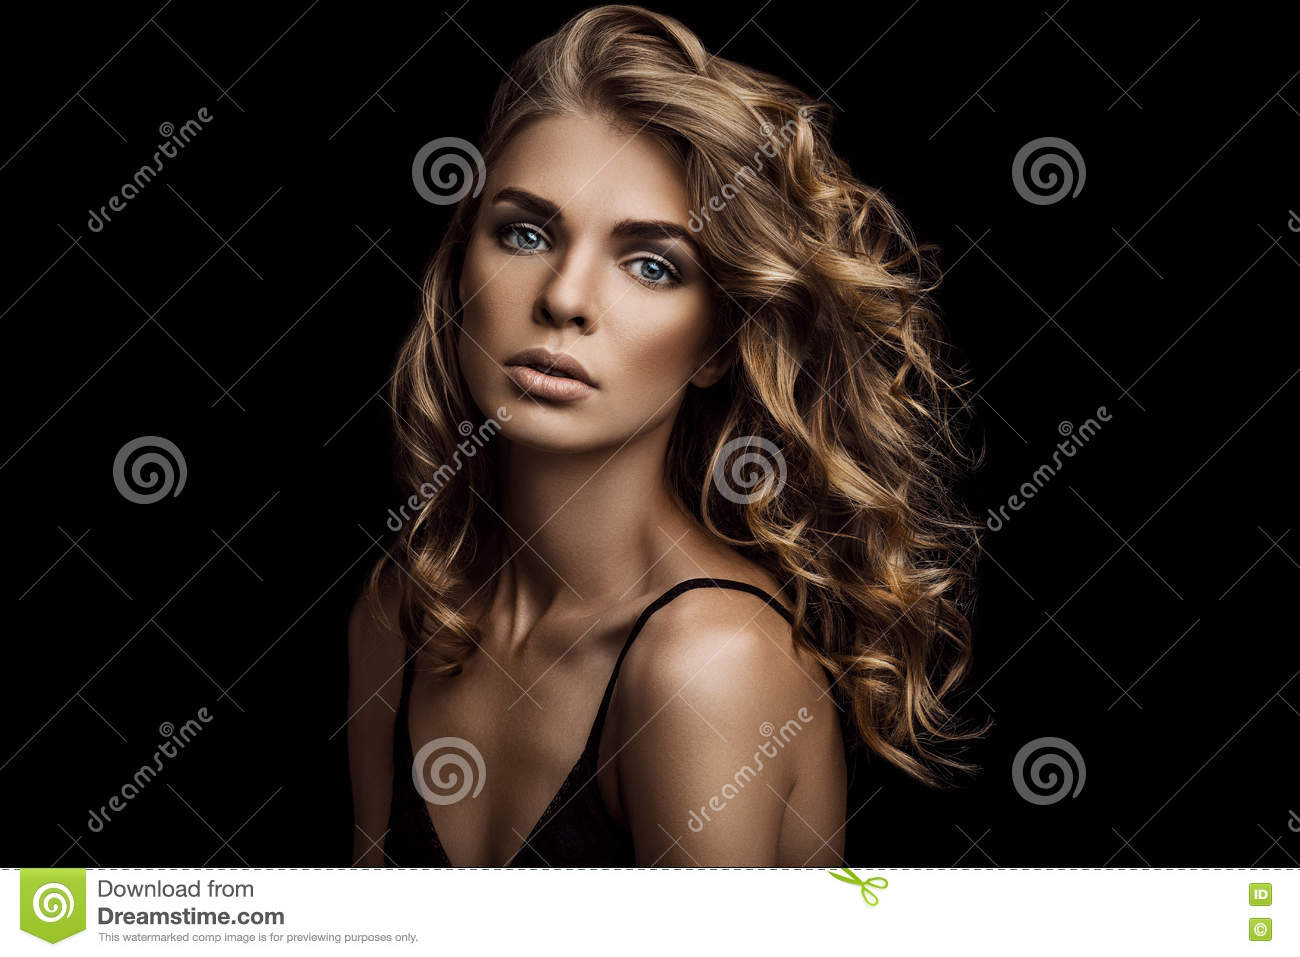 Vogue style close-up portrait of beautiful woman with long curly hair